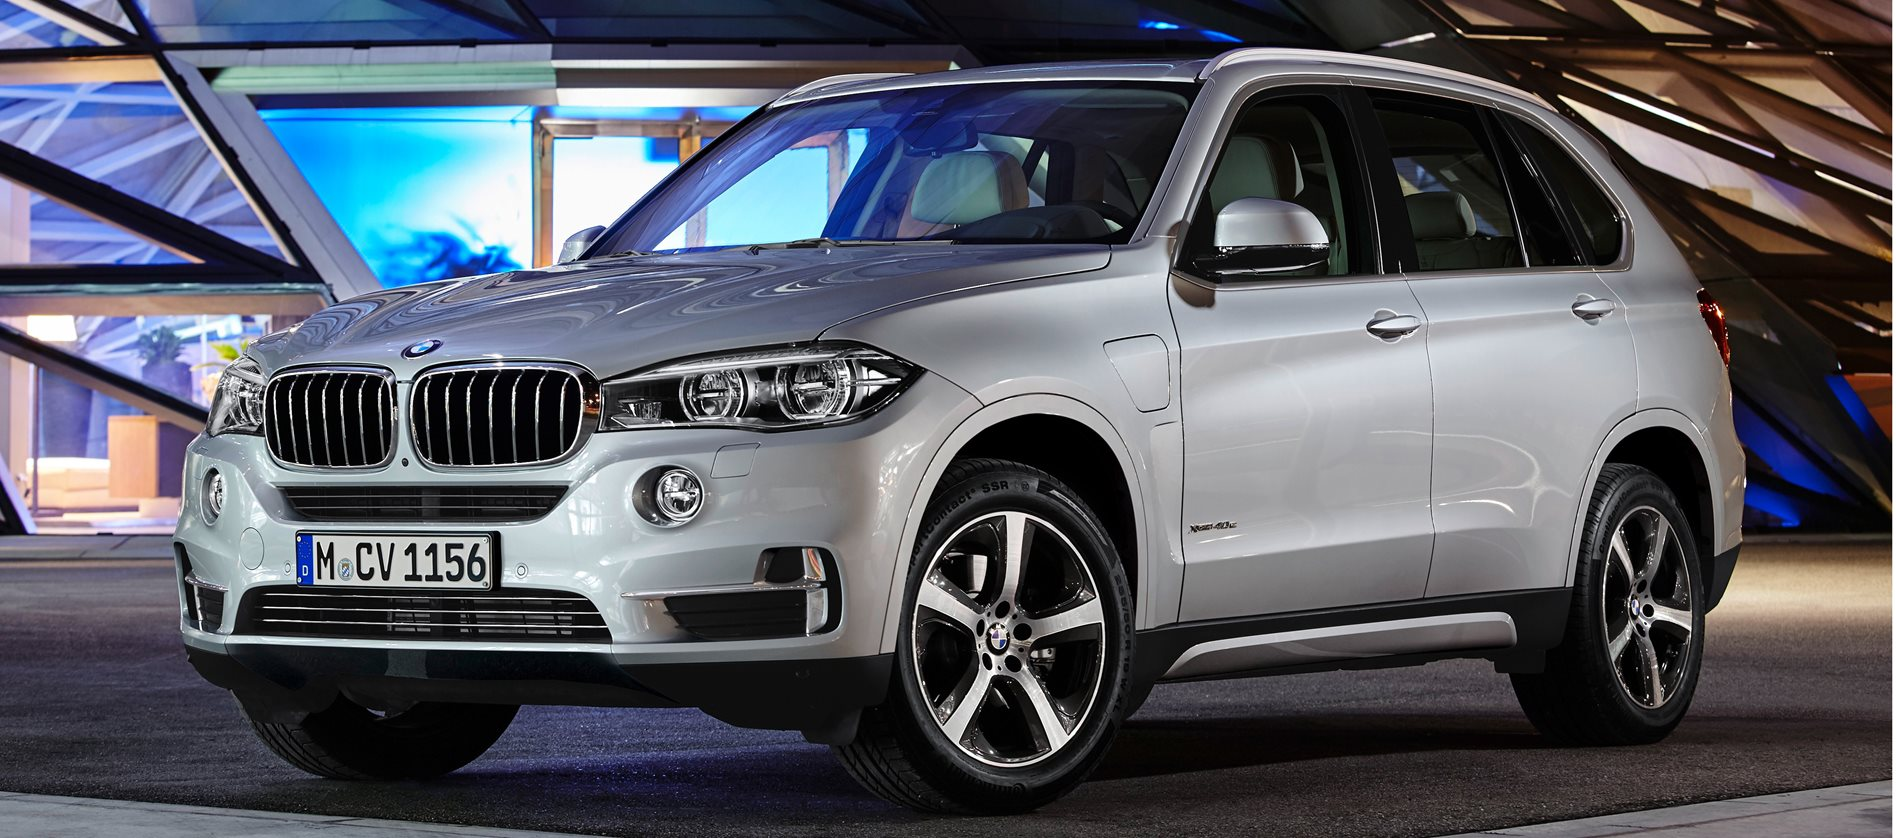 2016 bmw x5 plug in hybrid first official pics wheels. Black Bedroom Furniture Sets. Home Design Ideas